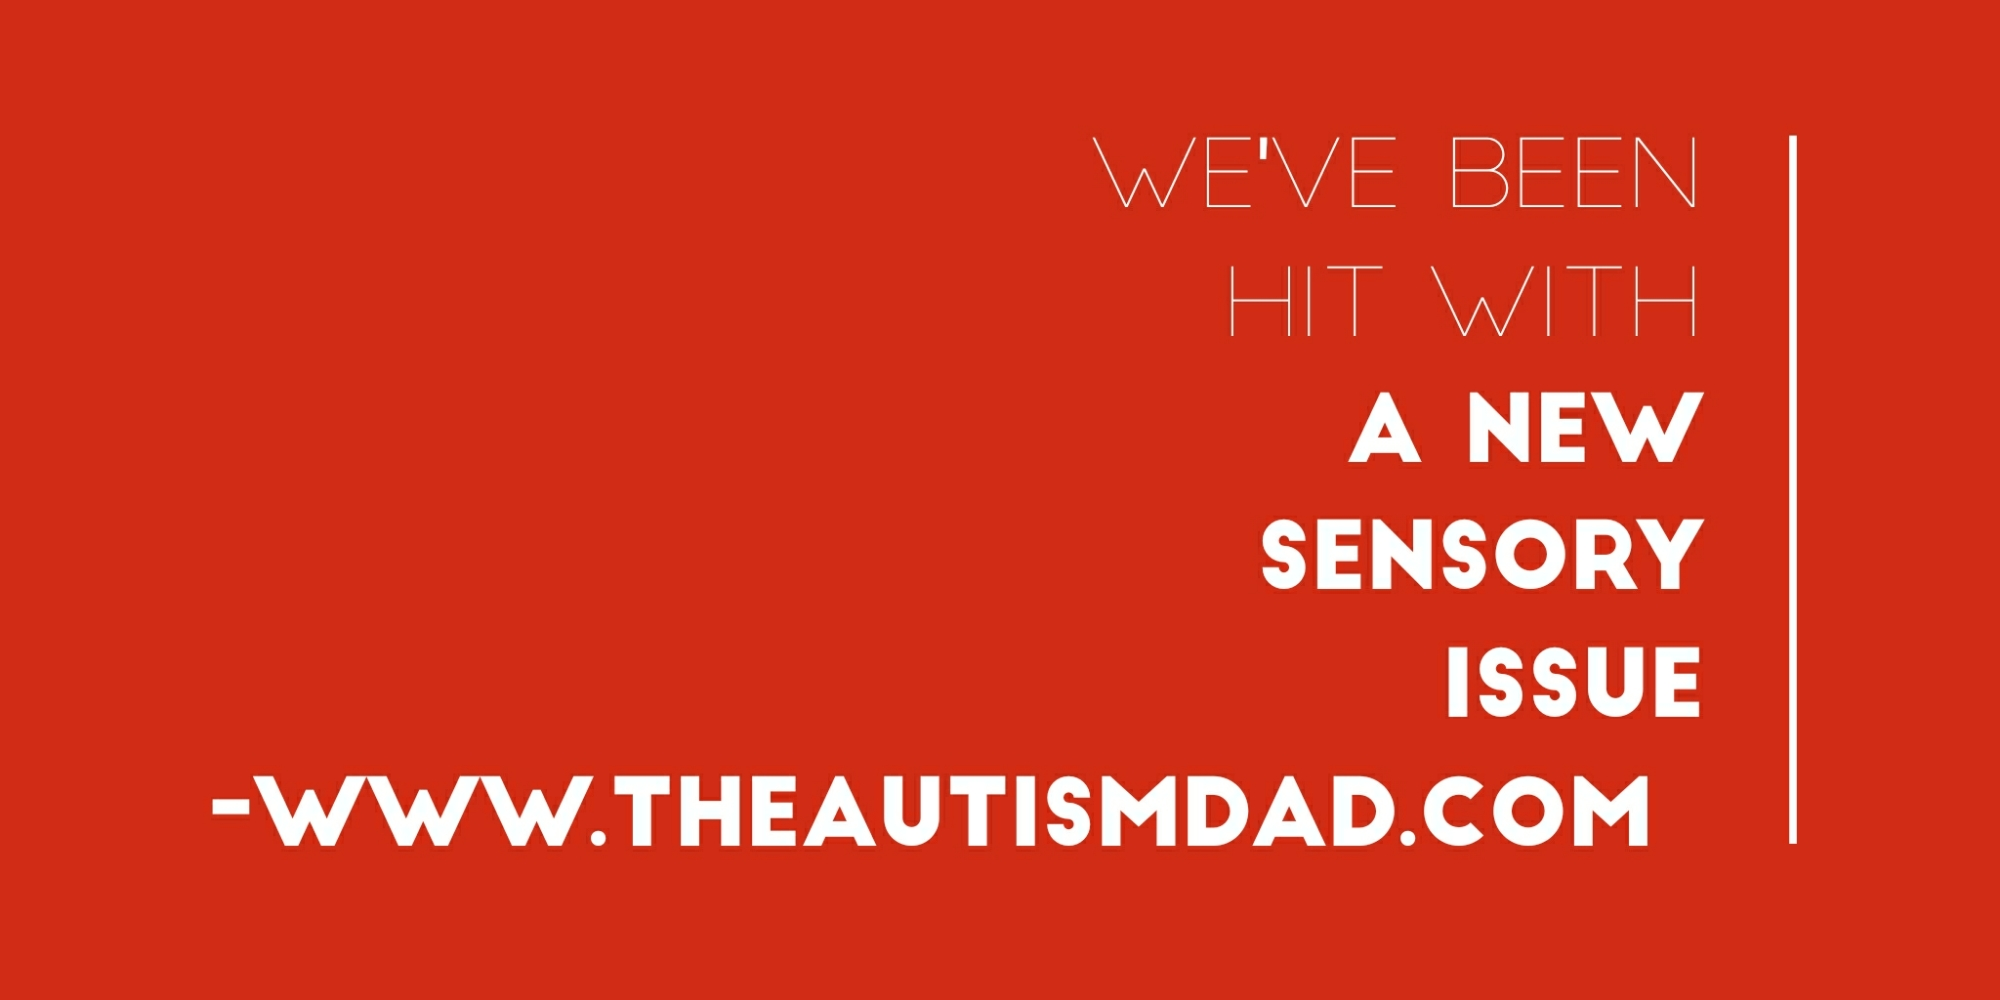 We've been hit with a new #Sensory issue